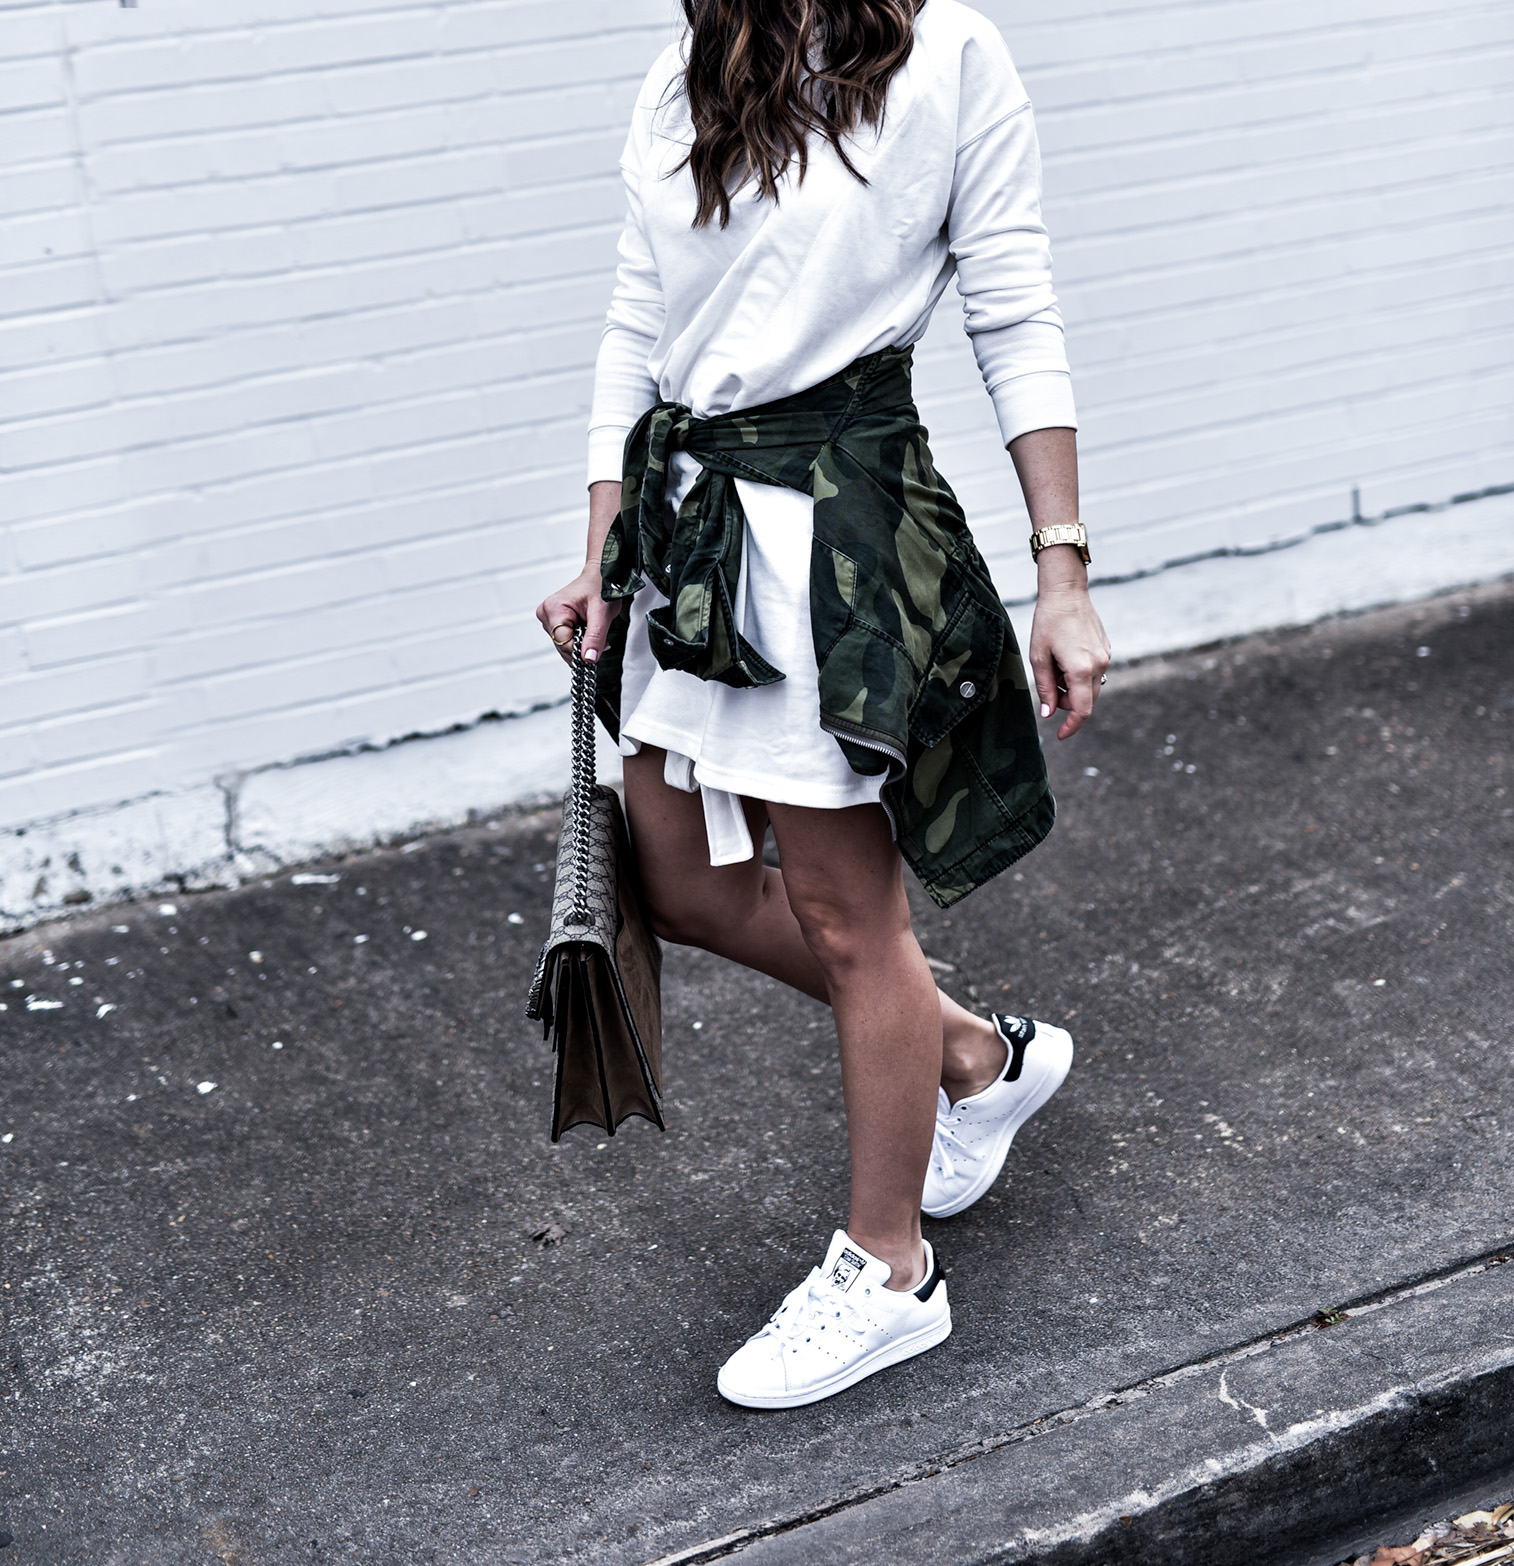 Houston fashion and lifestyle blogger Tiffany Jais wearing a t-shirt dress from ASOS and white Stan Smith sneakers | What's trending in women's fashion